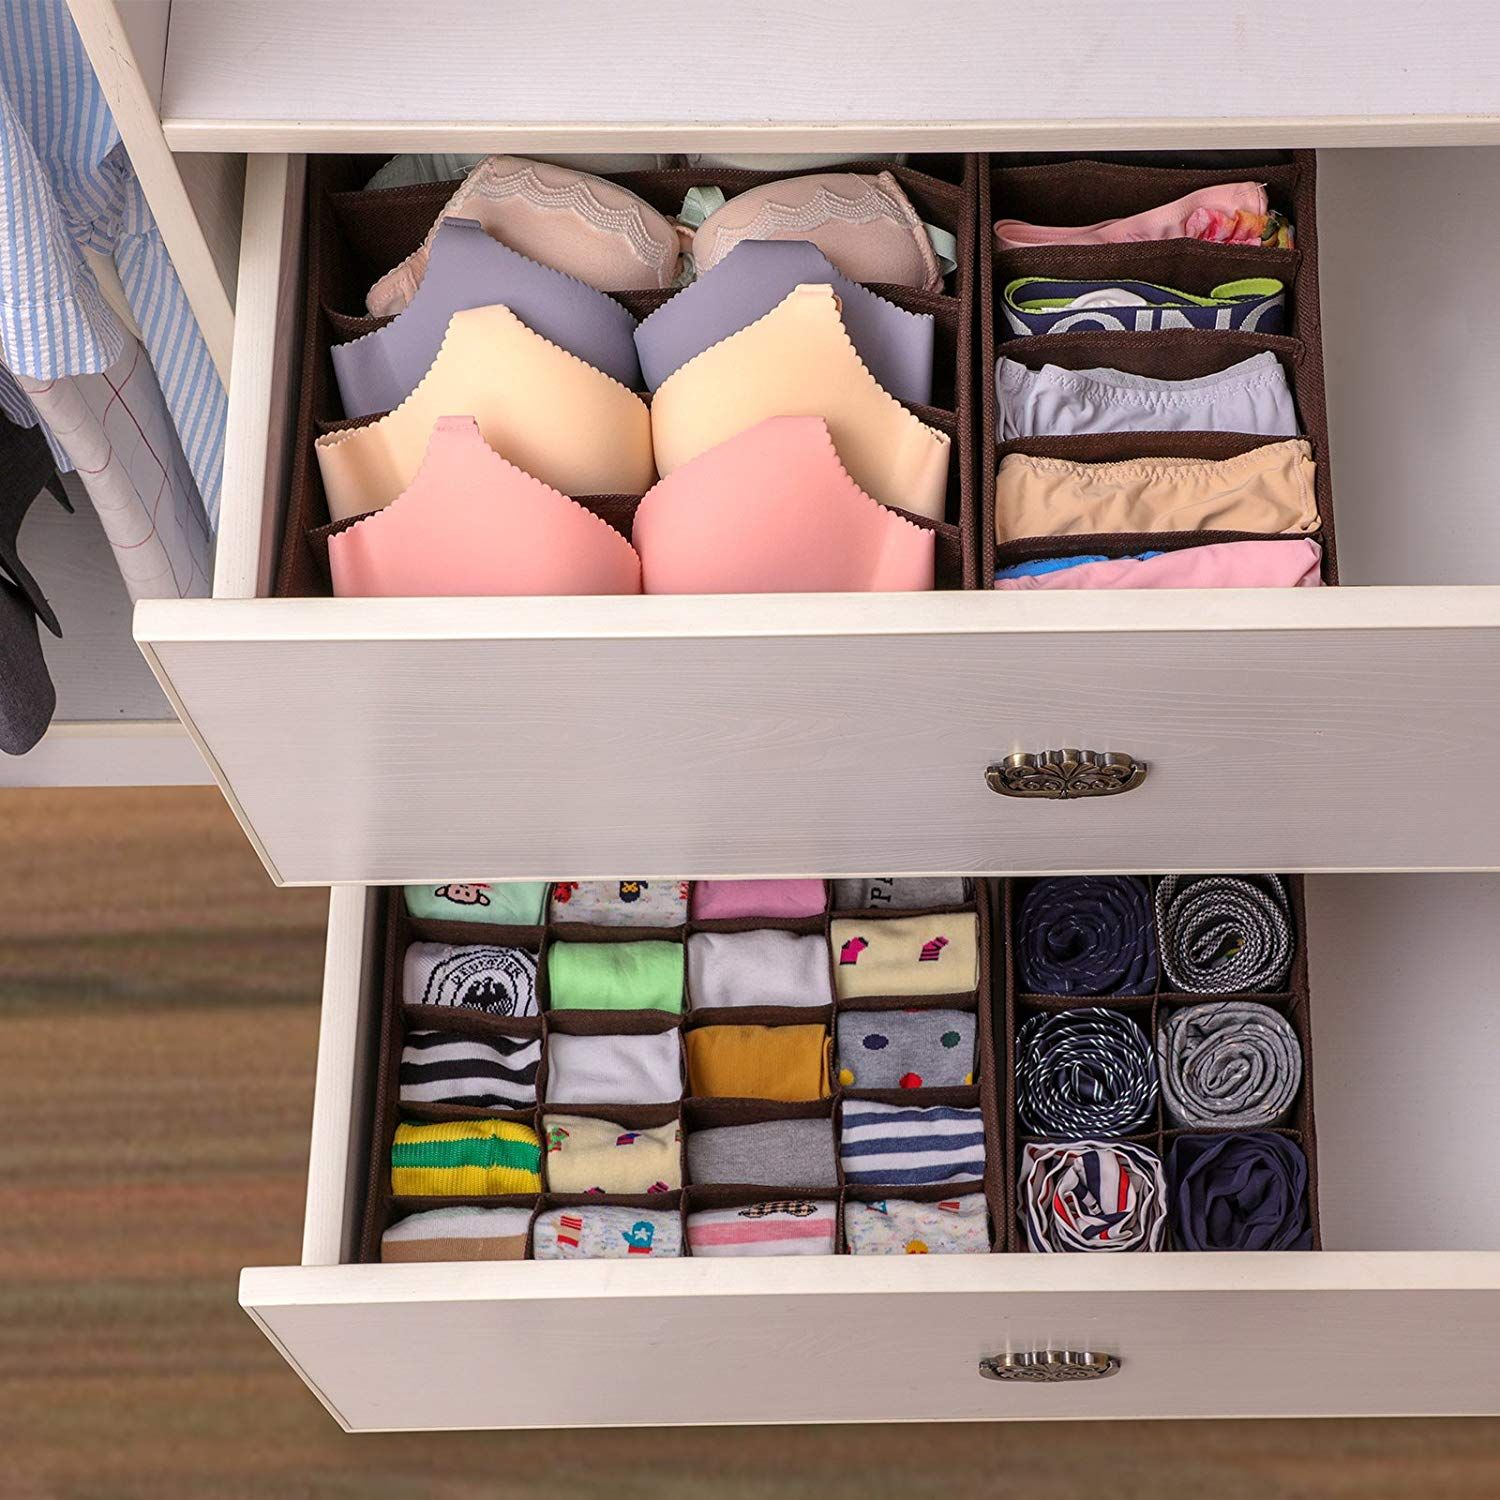 10 Bedroom Organization Ideas, Storage Tips For A Clutter-Free Space images